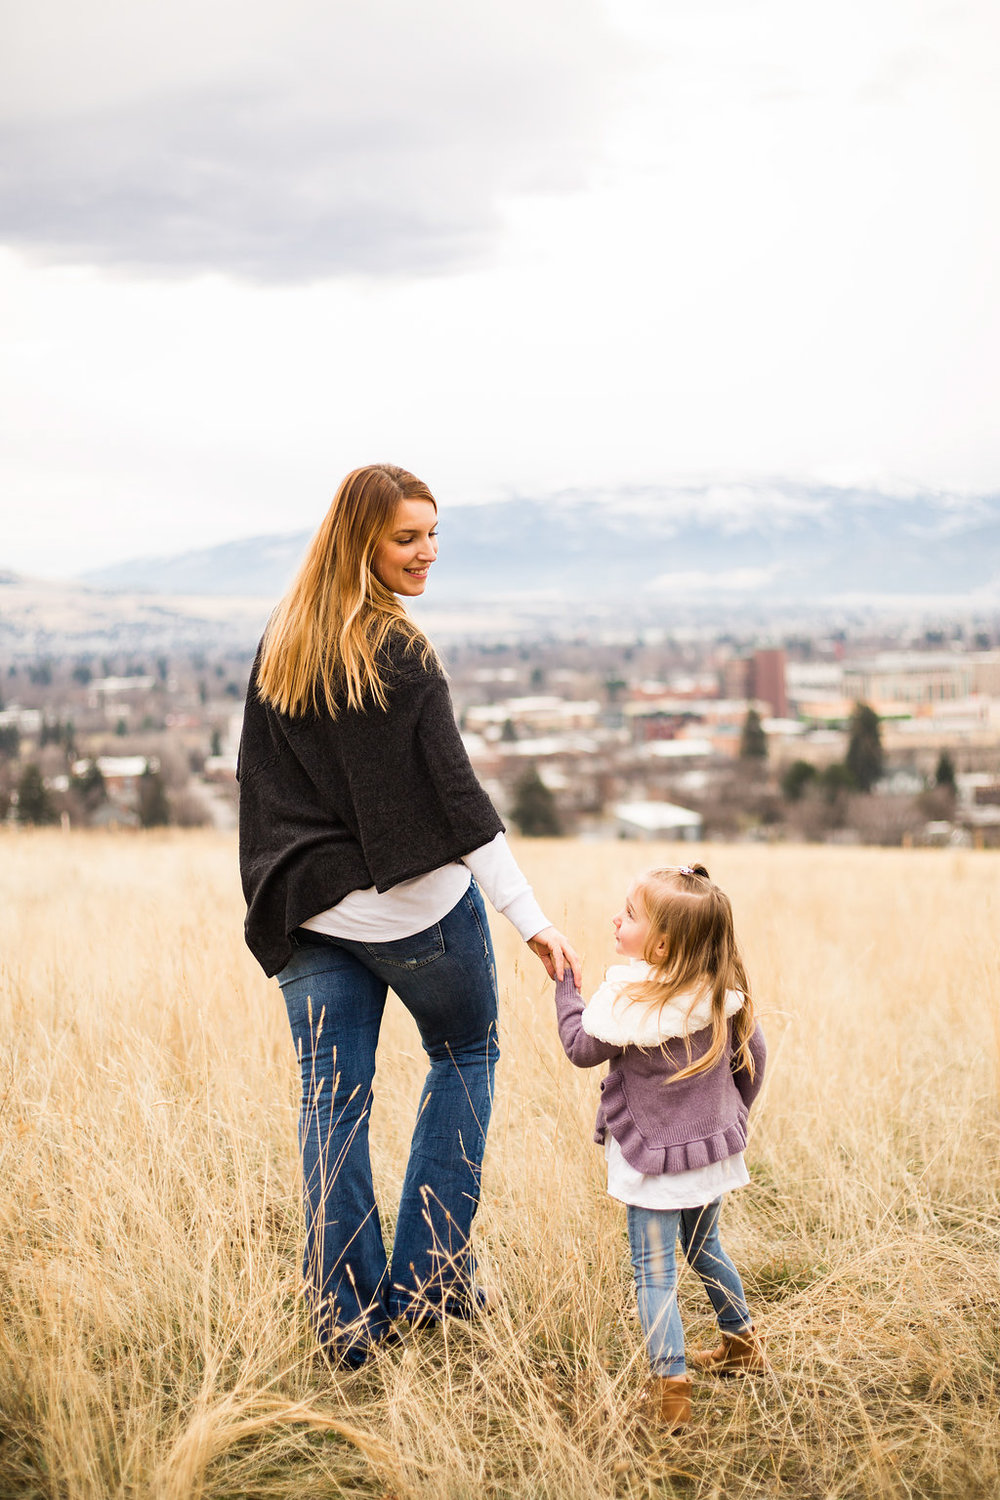 missoula-montana-spring-mini-session-photography-15.jpg